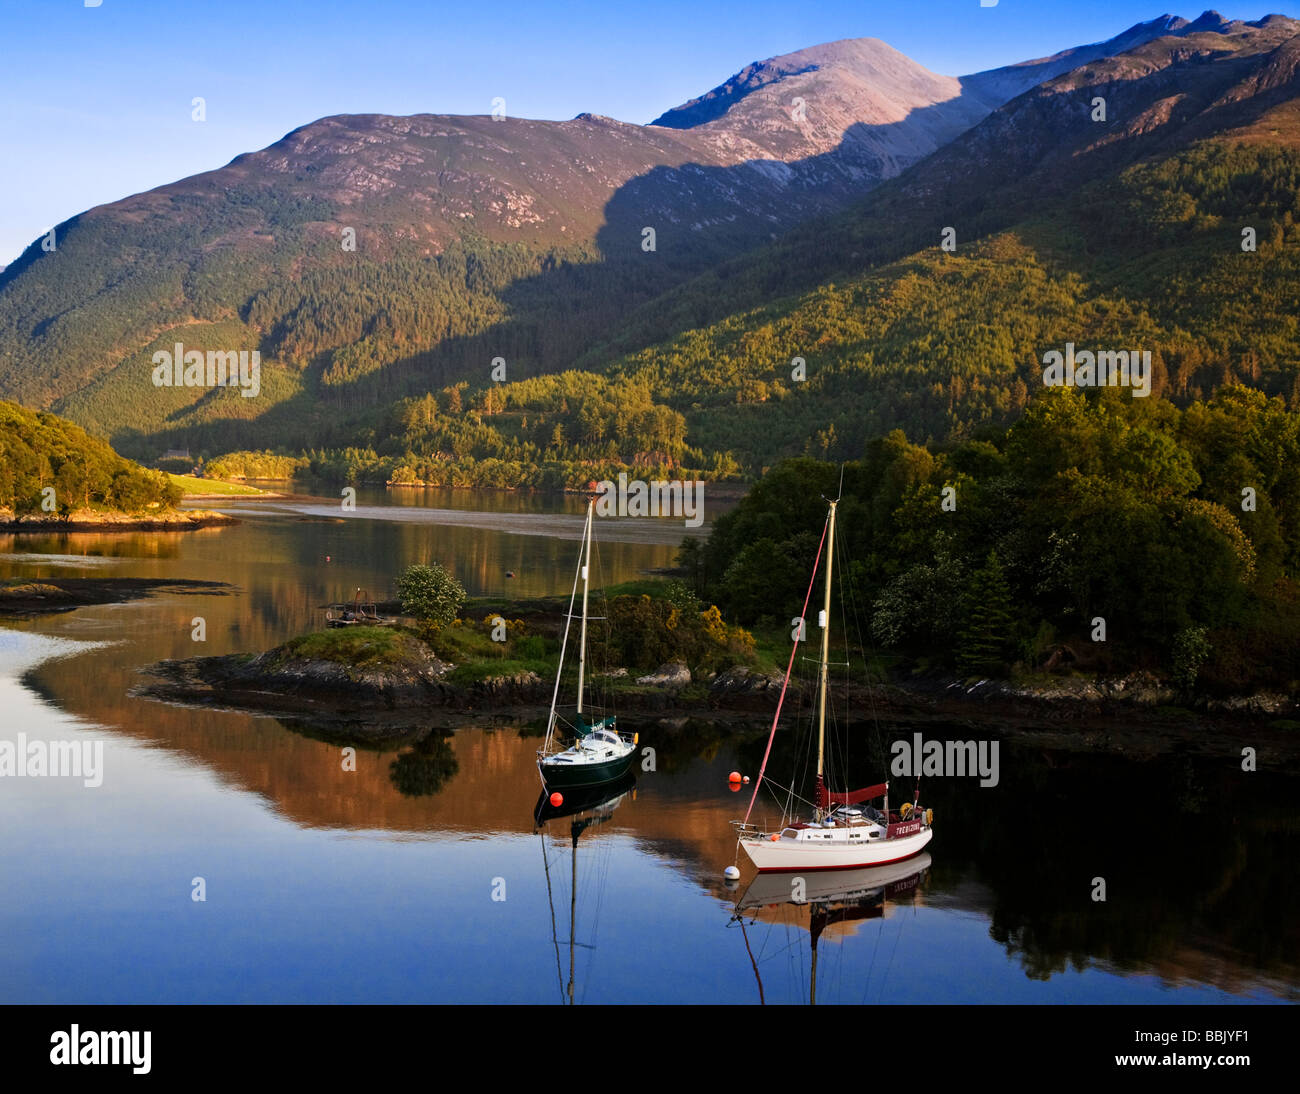 Yachts at anchor in Bishops bay, Loch Leven, Lochaber, Scotland. - Stock Image